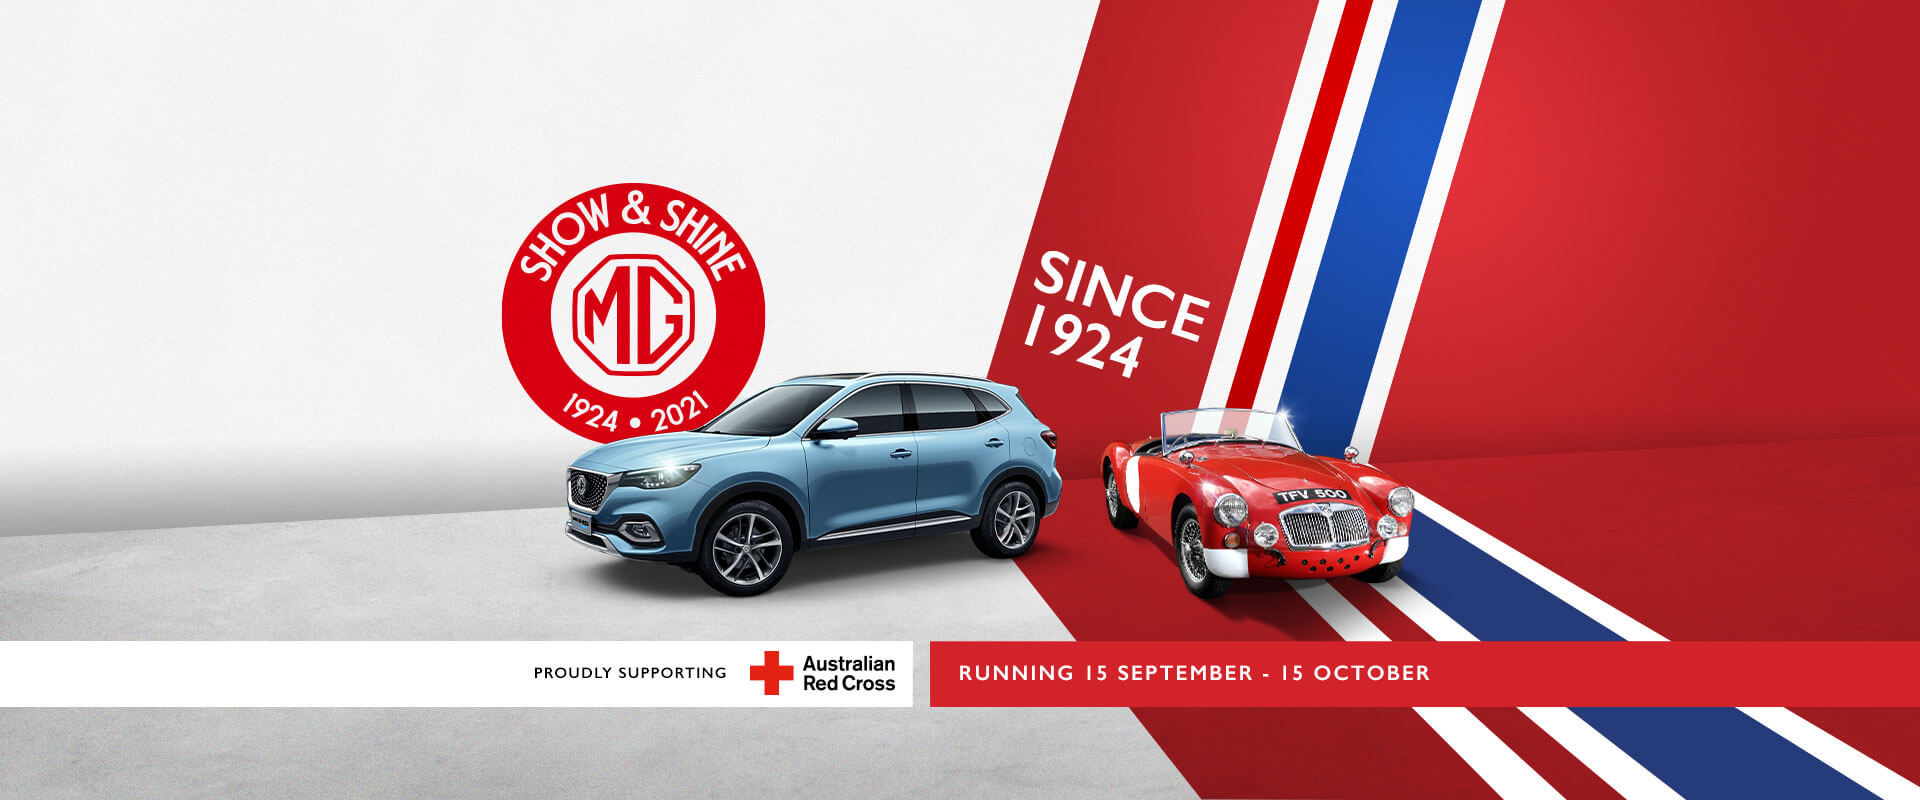 MG-Show-And-Shine-Banner-Oct21-YP